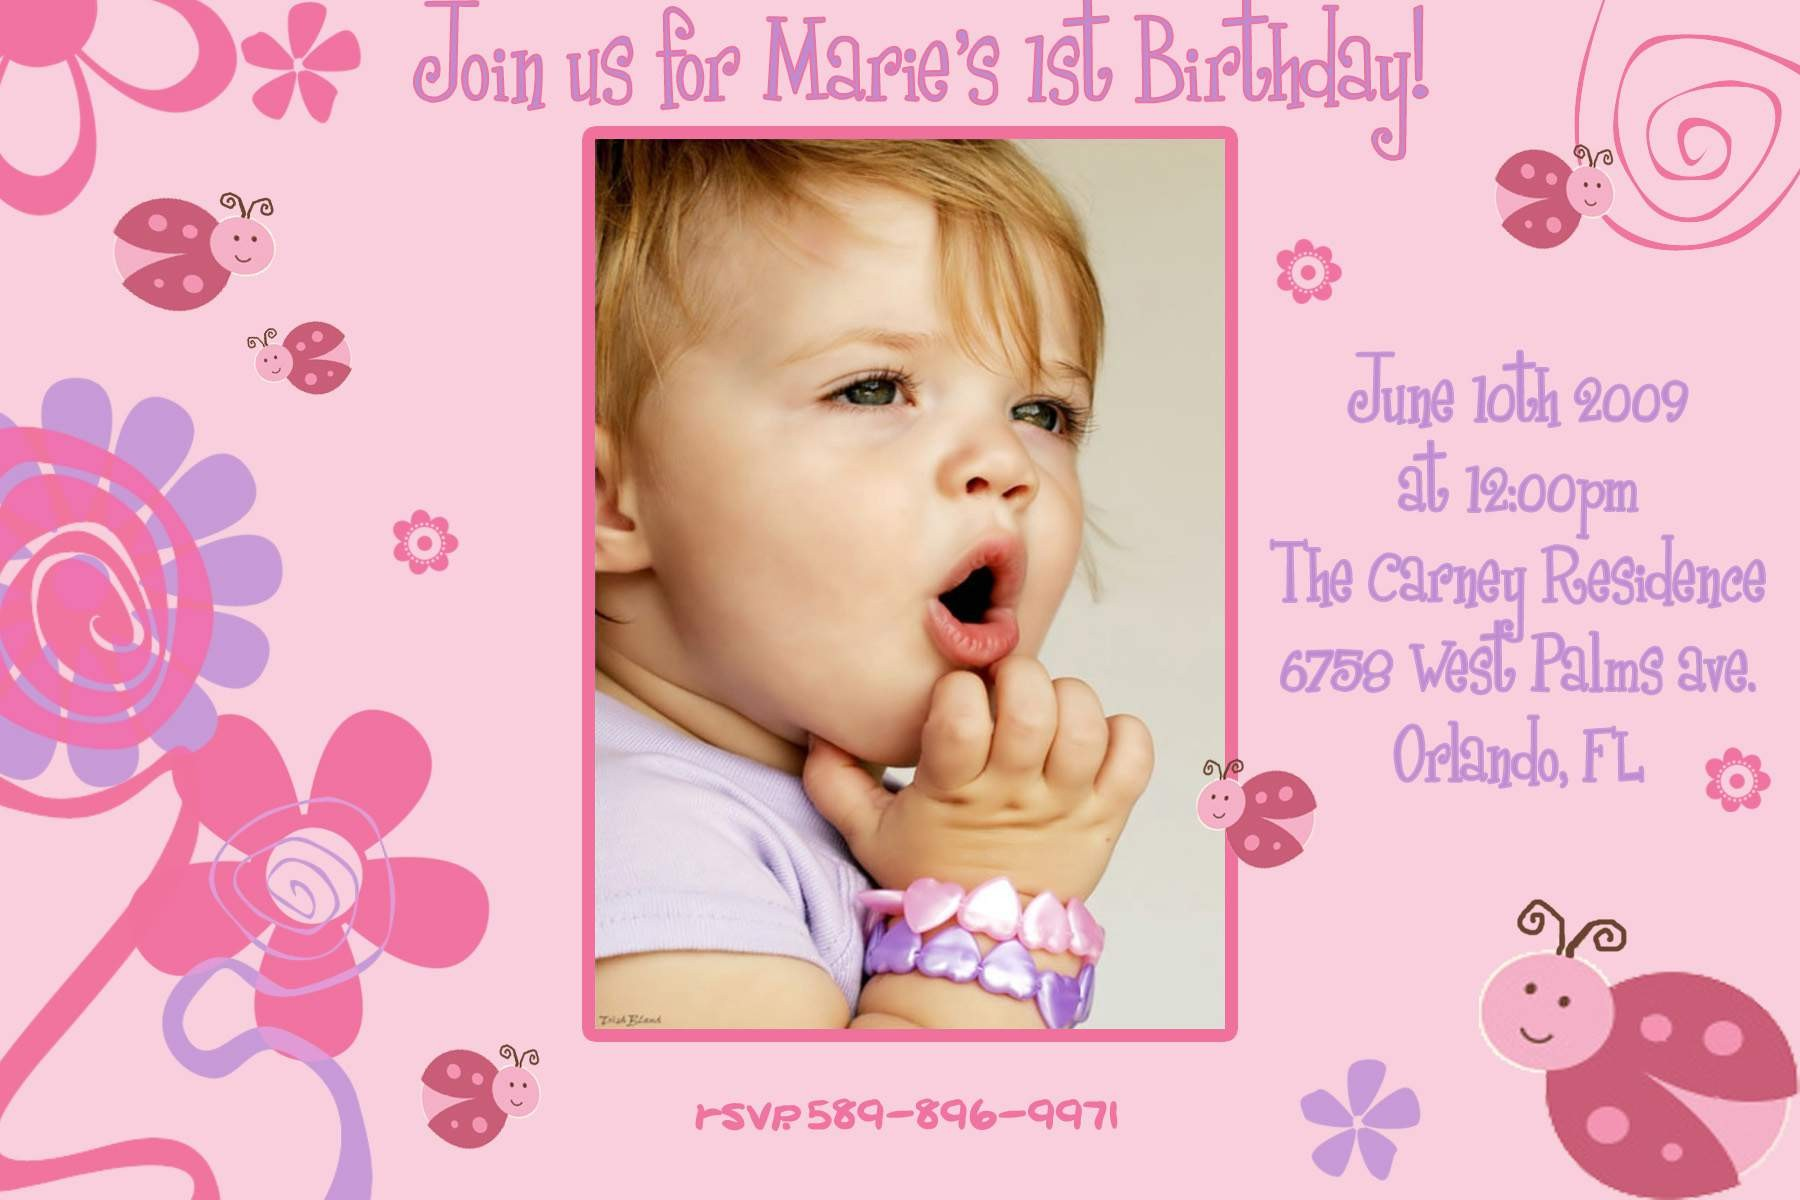 1st year birthday invitation card template ; invitation-for-first-birthday-girl-new-first-birthday-invitation-card-template-asafonec-of-invitation-for-first-birthday-girl